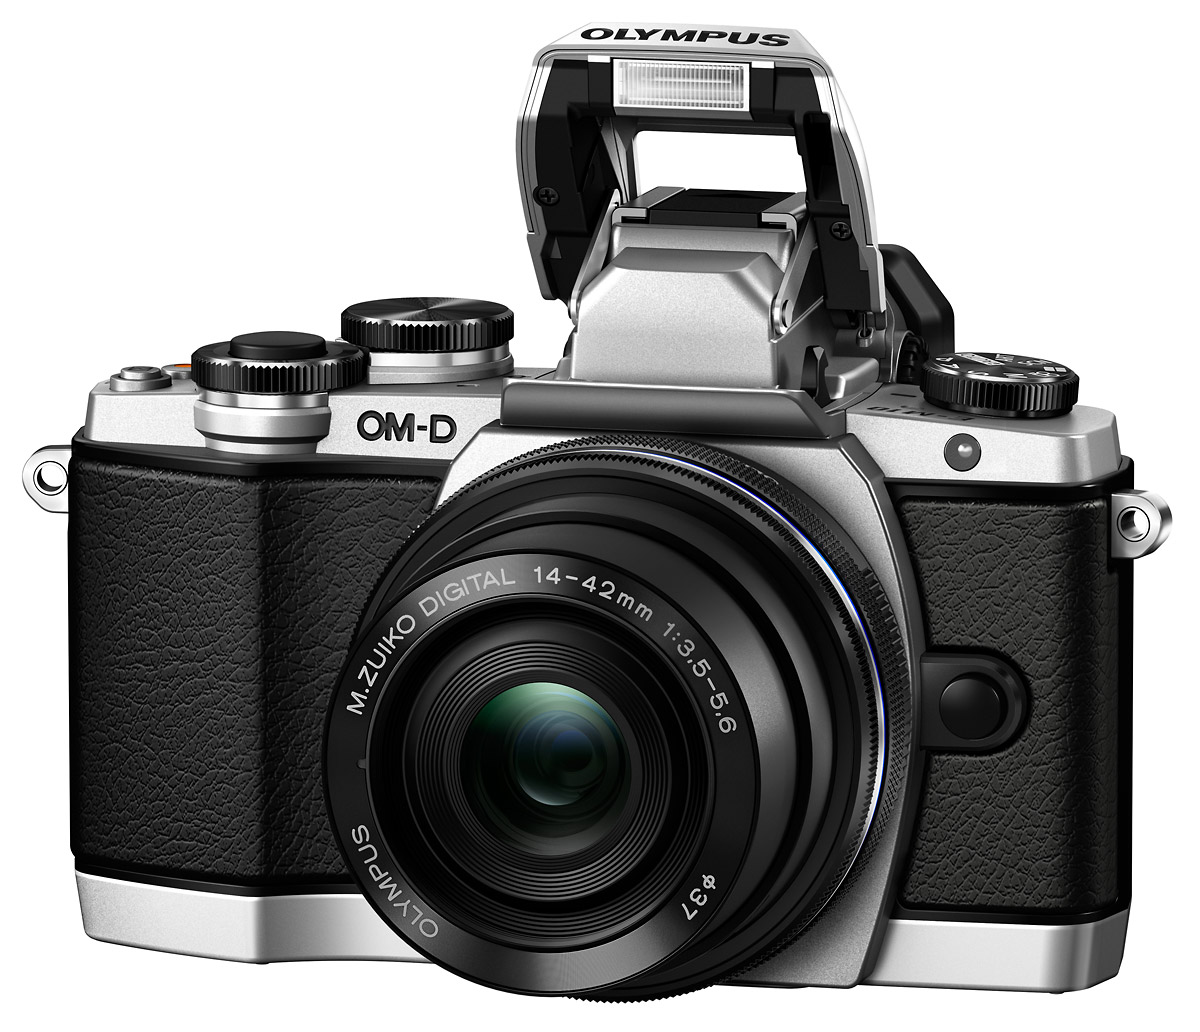 Olympus OM-D E-M10 - Smaller, Affordable OM-D • Camera News and Reviews